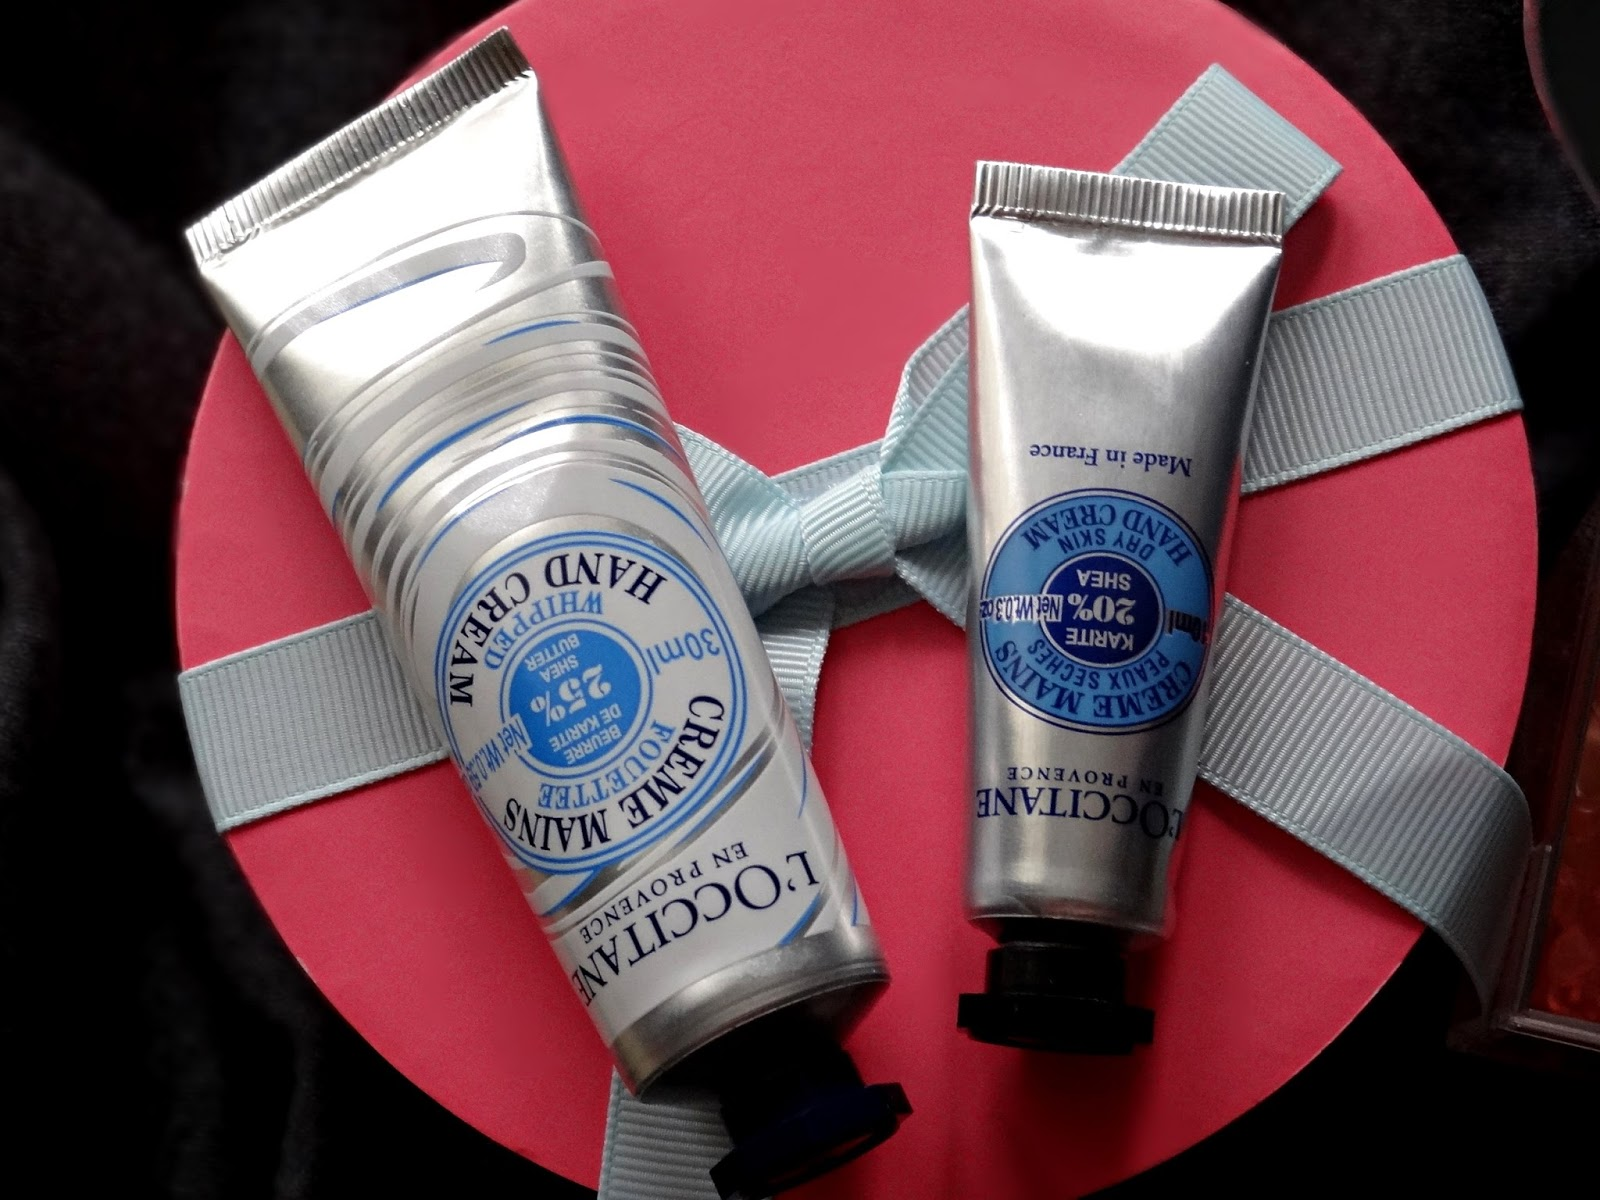 L'OcciBox Spring Edition by L'Occitane (L'OcciBox #2)